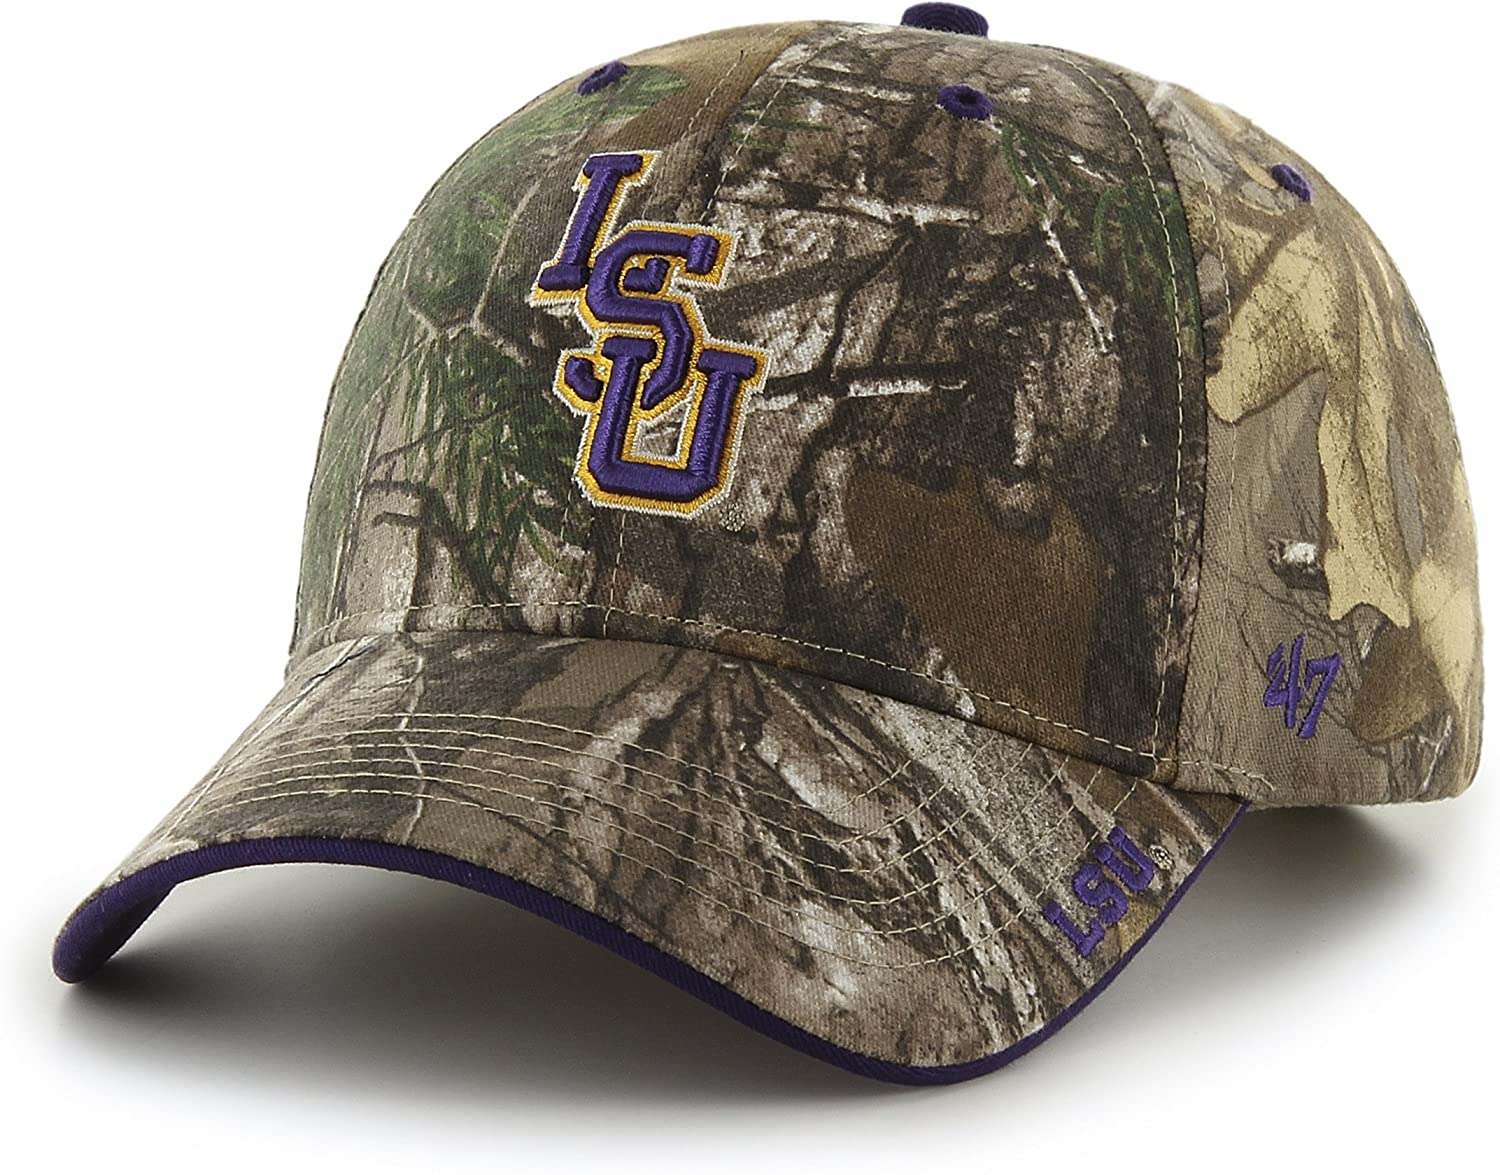 Realtree Camouflage 47 NCAA LSU Tigers Frost MVP Adjustable Hat One Size